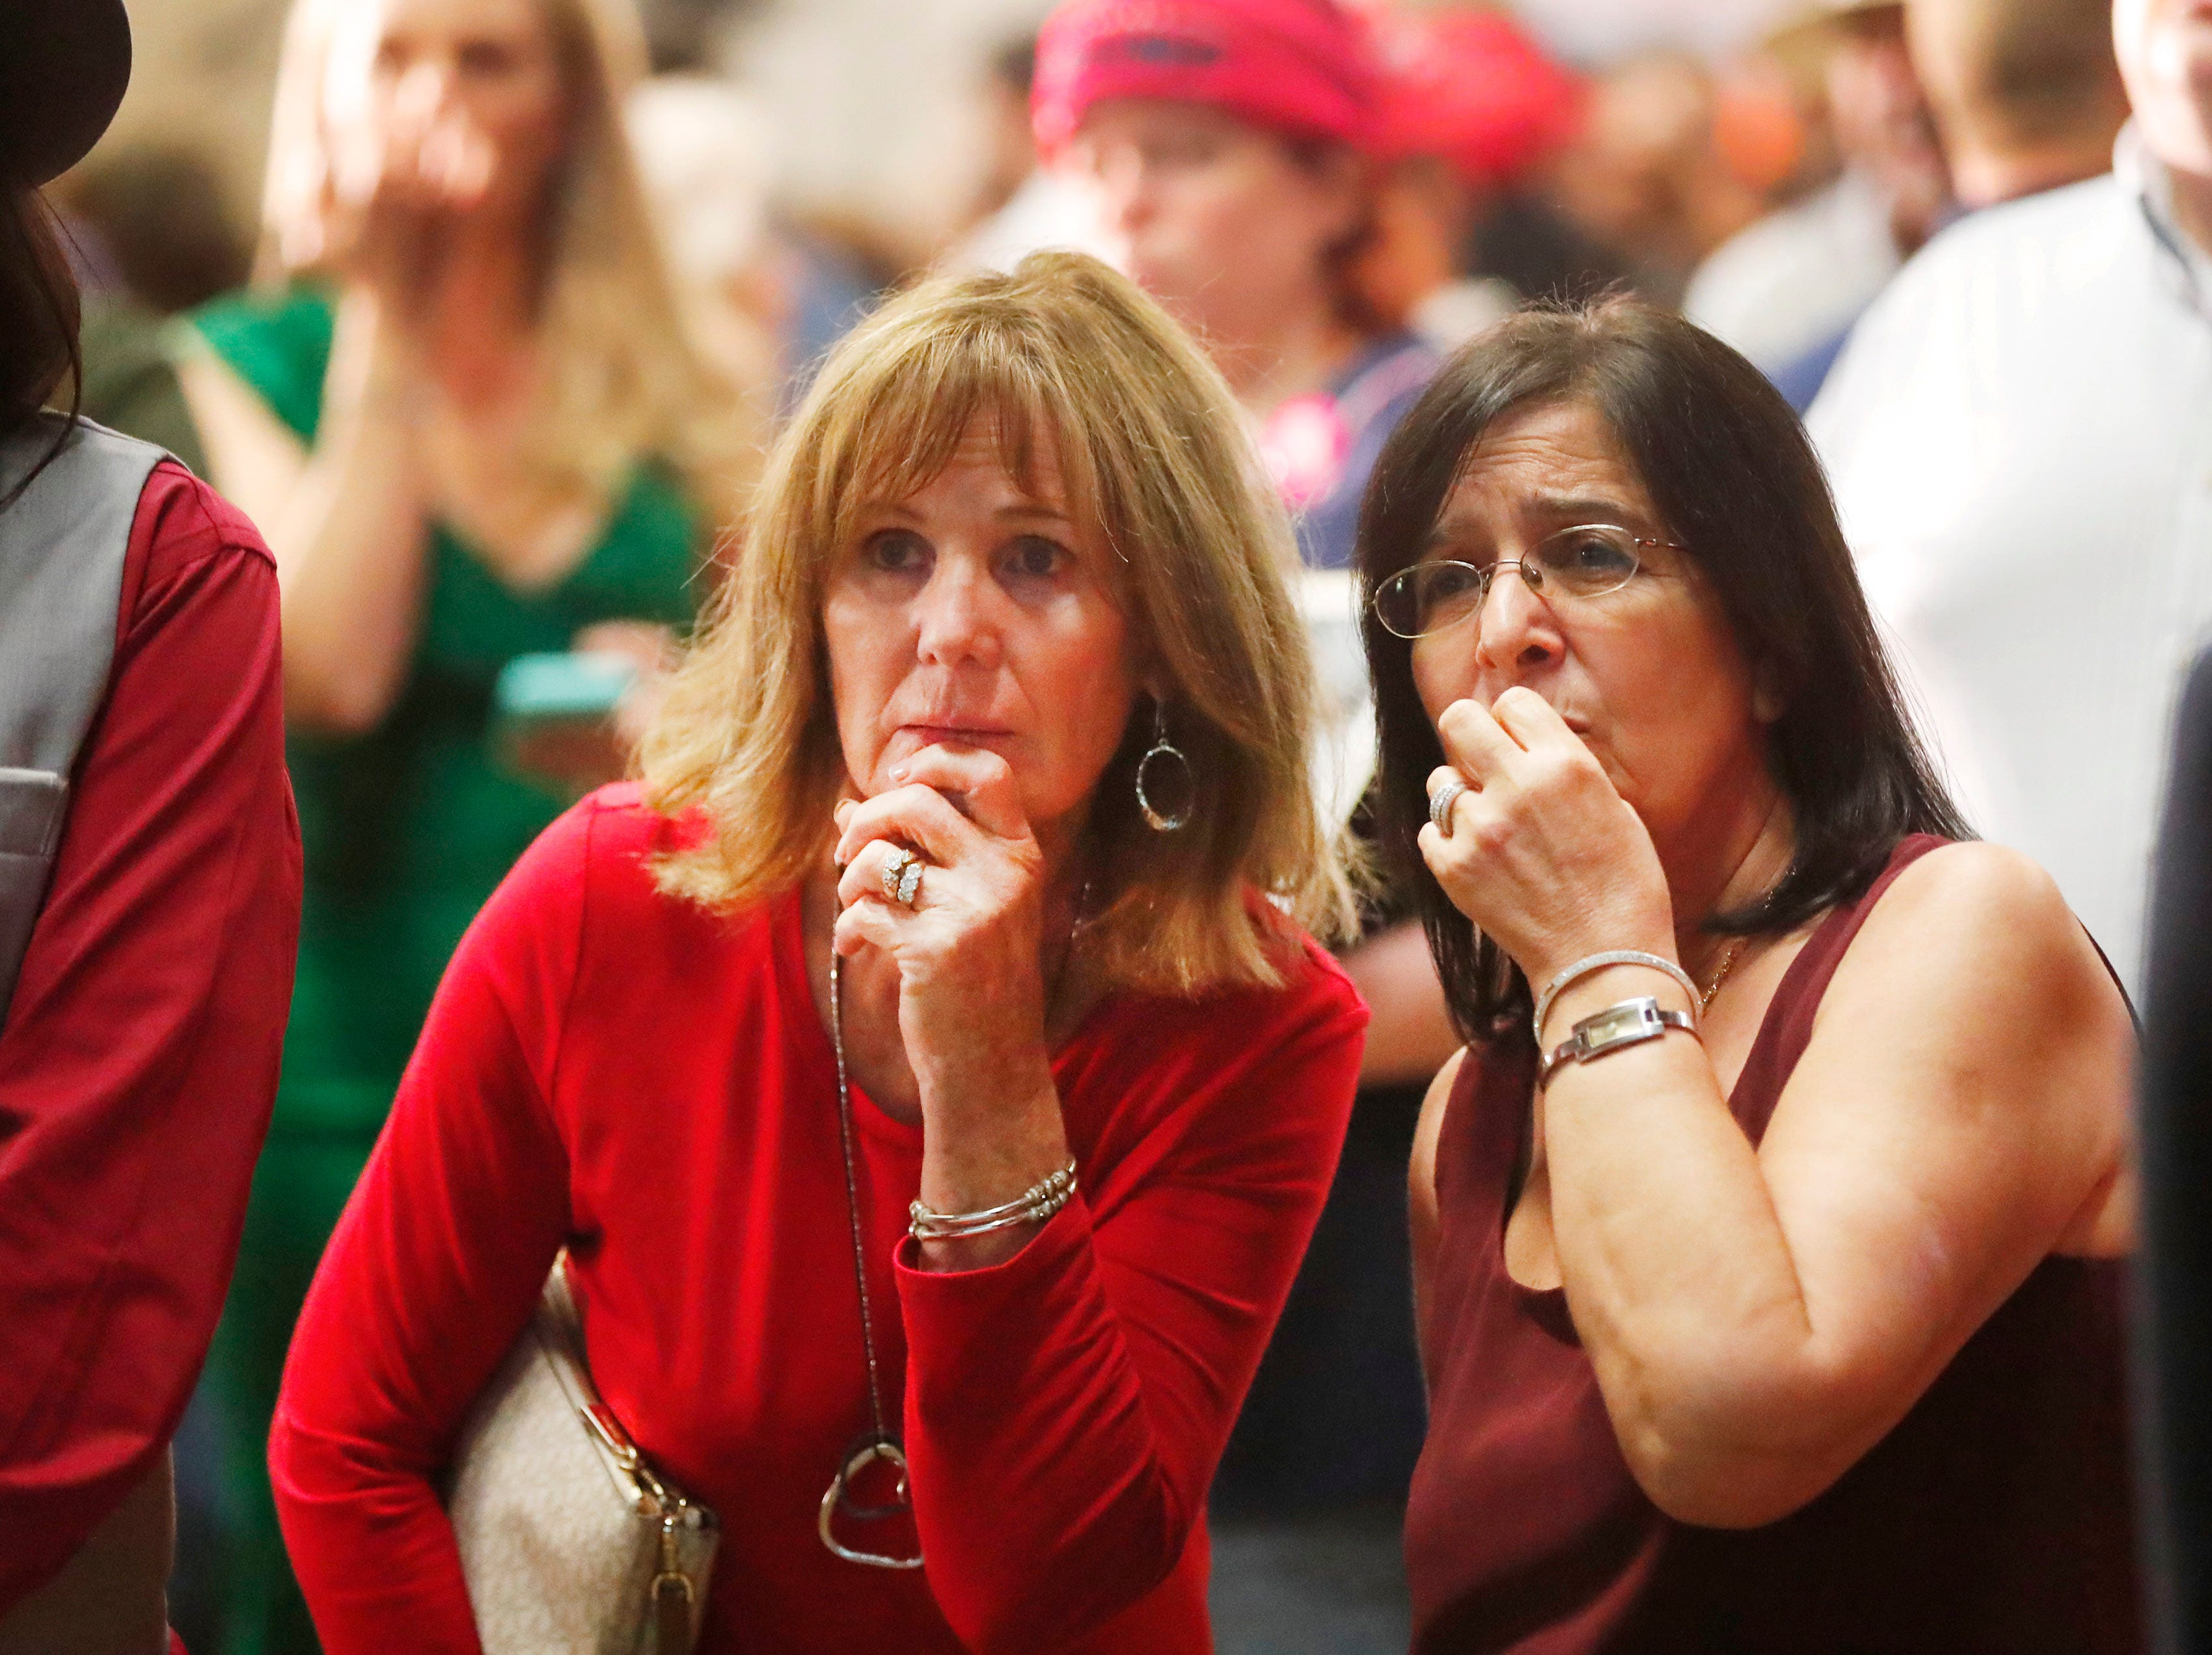 Angie Peterson (left) and Teresa Lariviere watch early returns on a screen during the Arizona Republican Party Election Night party in Scottsdale Nov. 6, 2018.